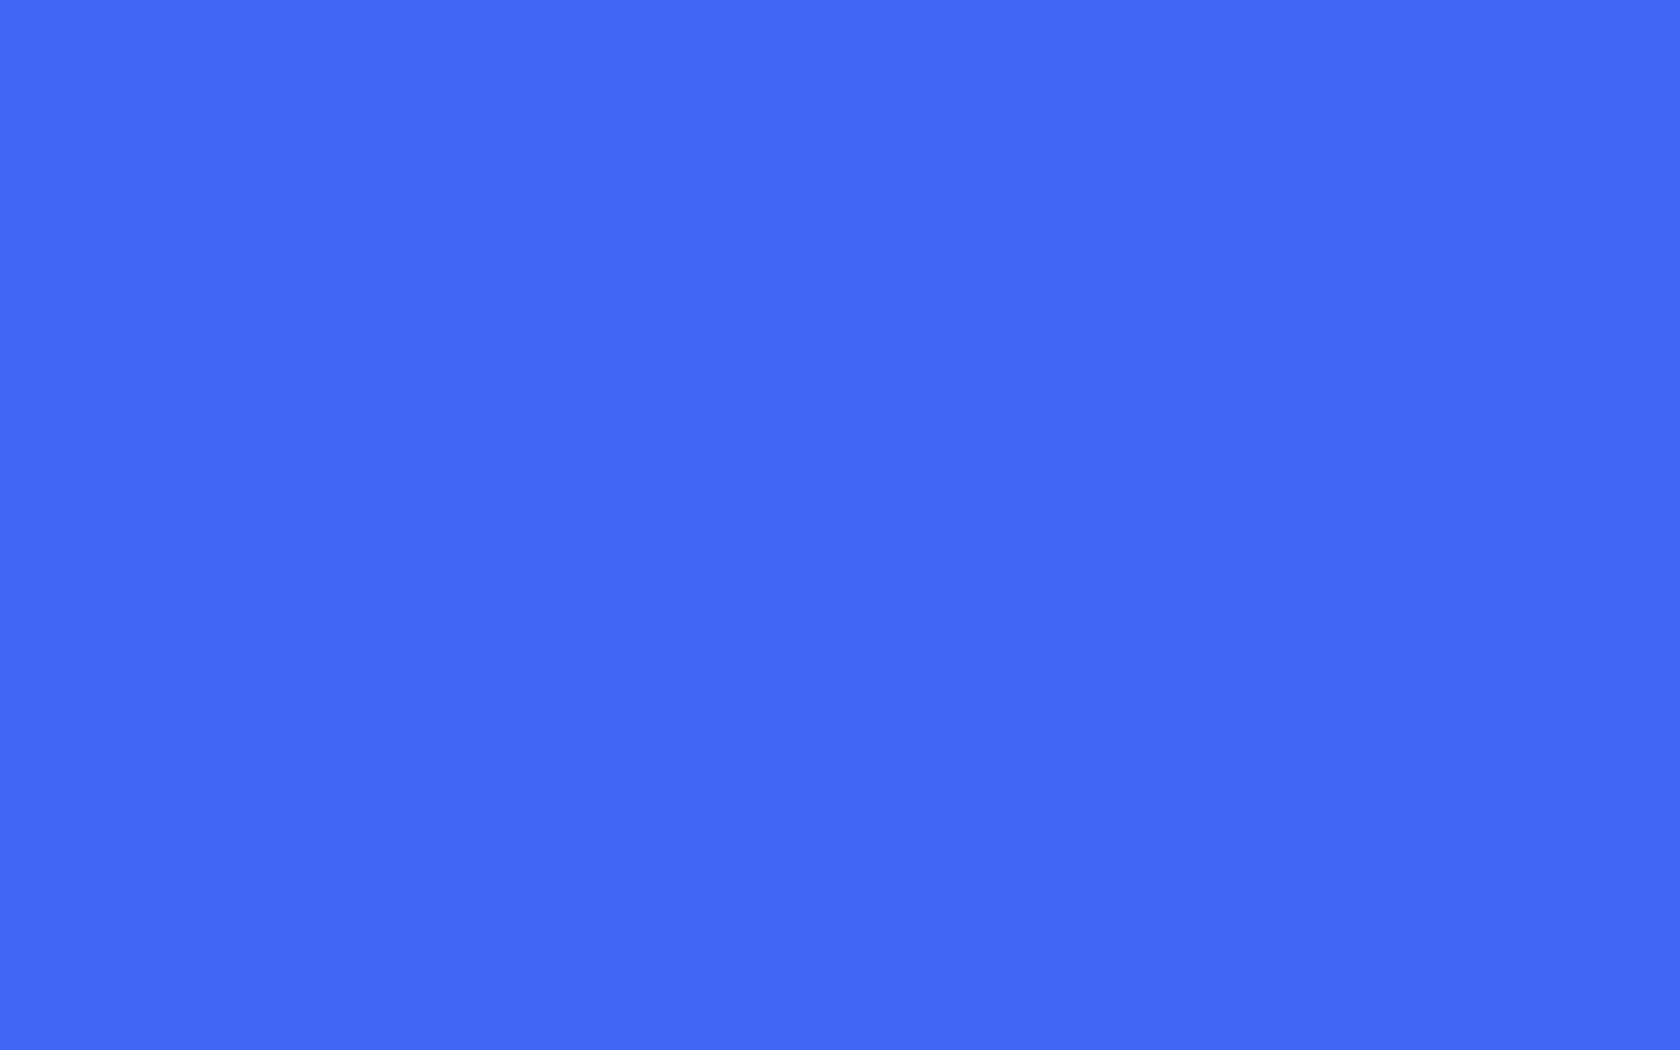 1680x1050 Ultramarine Blue Solid Color Background